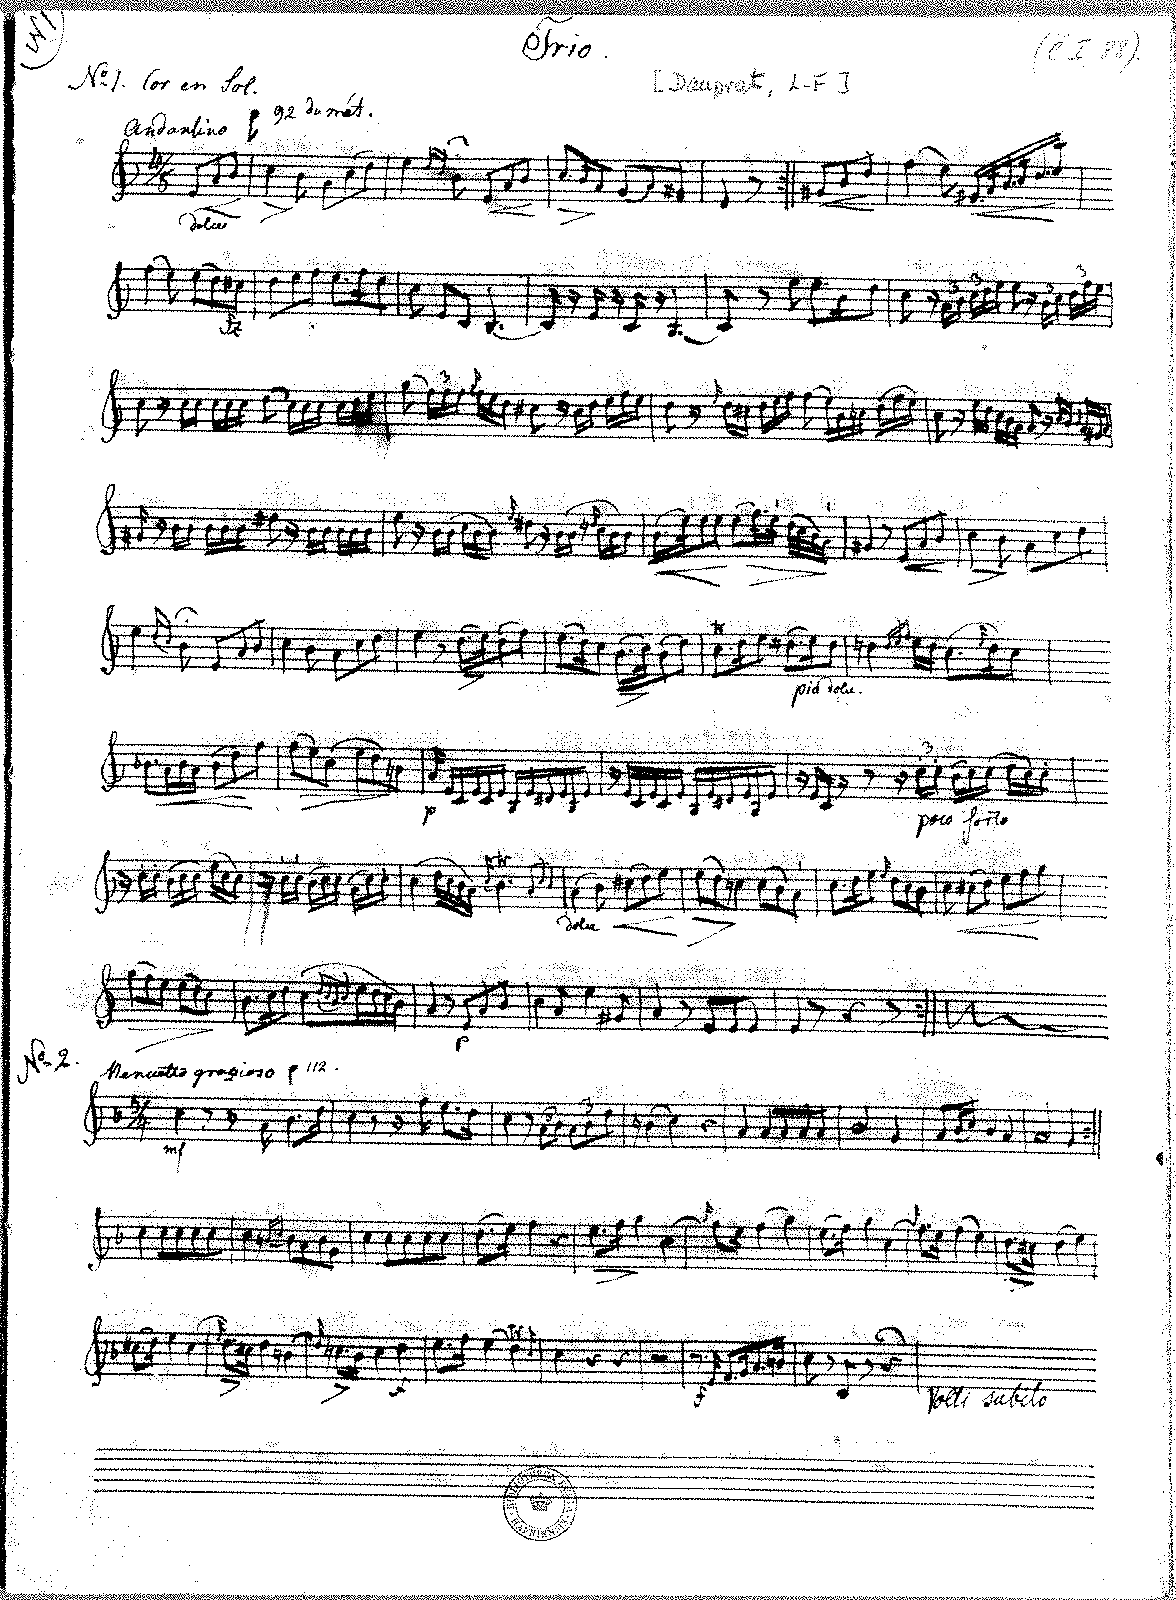 Dauprat, L.F. - Trio No. 1-6 (for horn).pdf